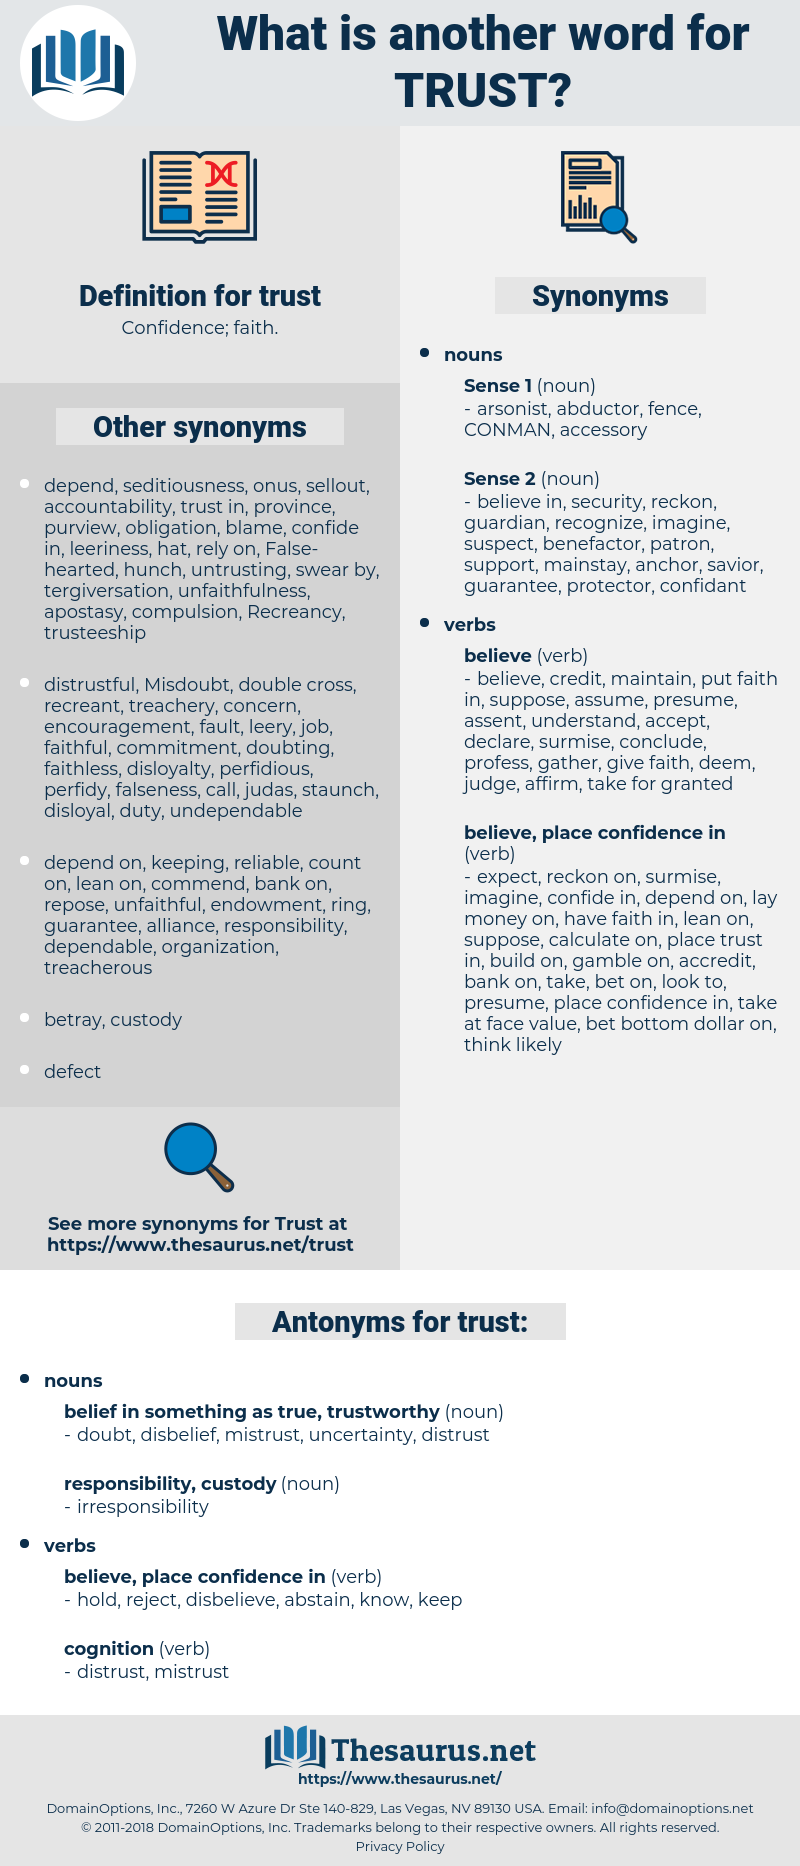 trust, synonym trust, another word for trust, words like trust, thesaurus trust